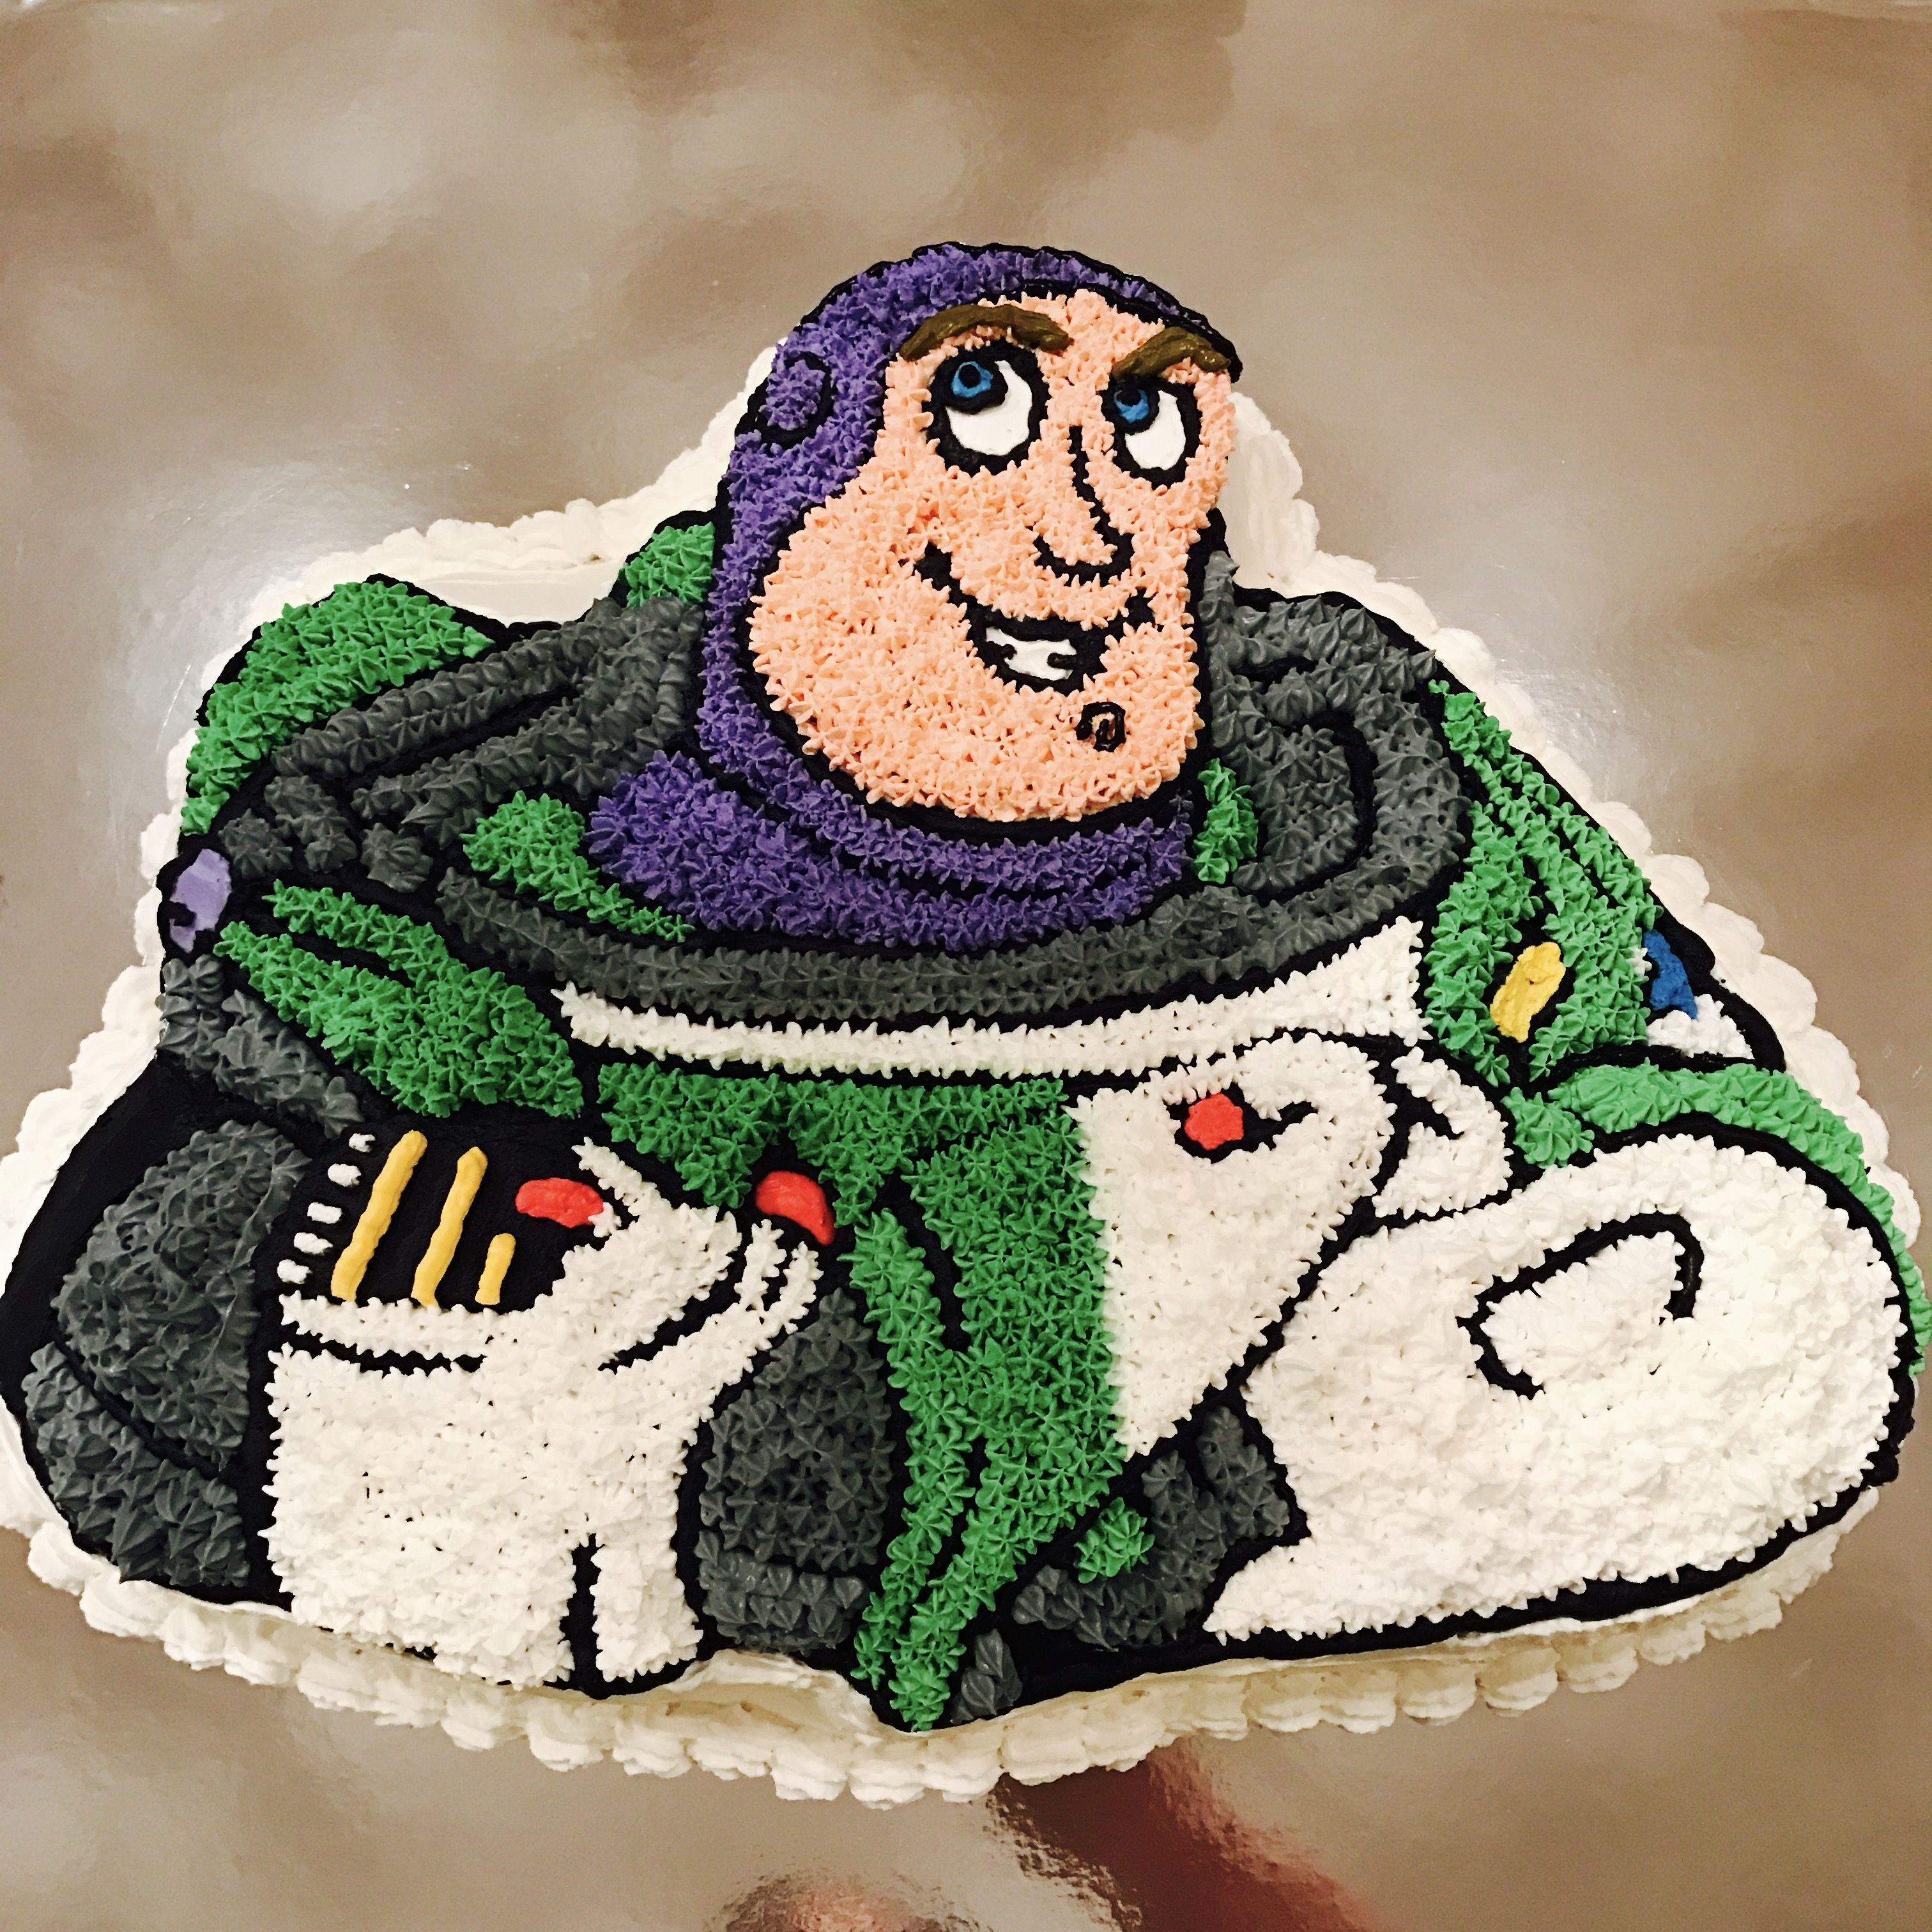 I Made This Buzz Lightyear Cake For A Friend S Son S Birthday It S